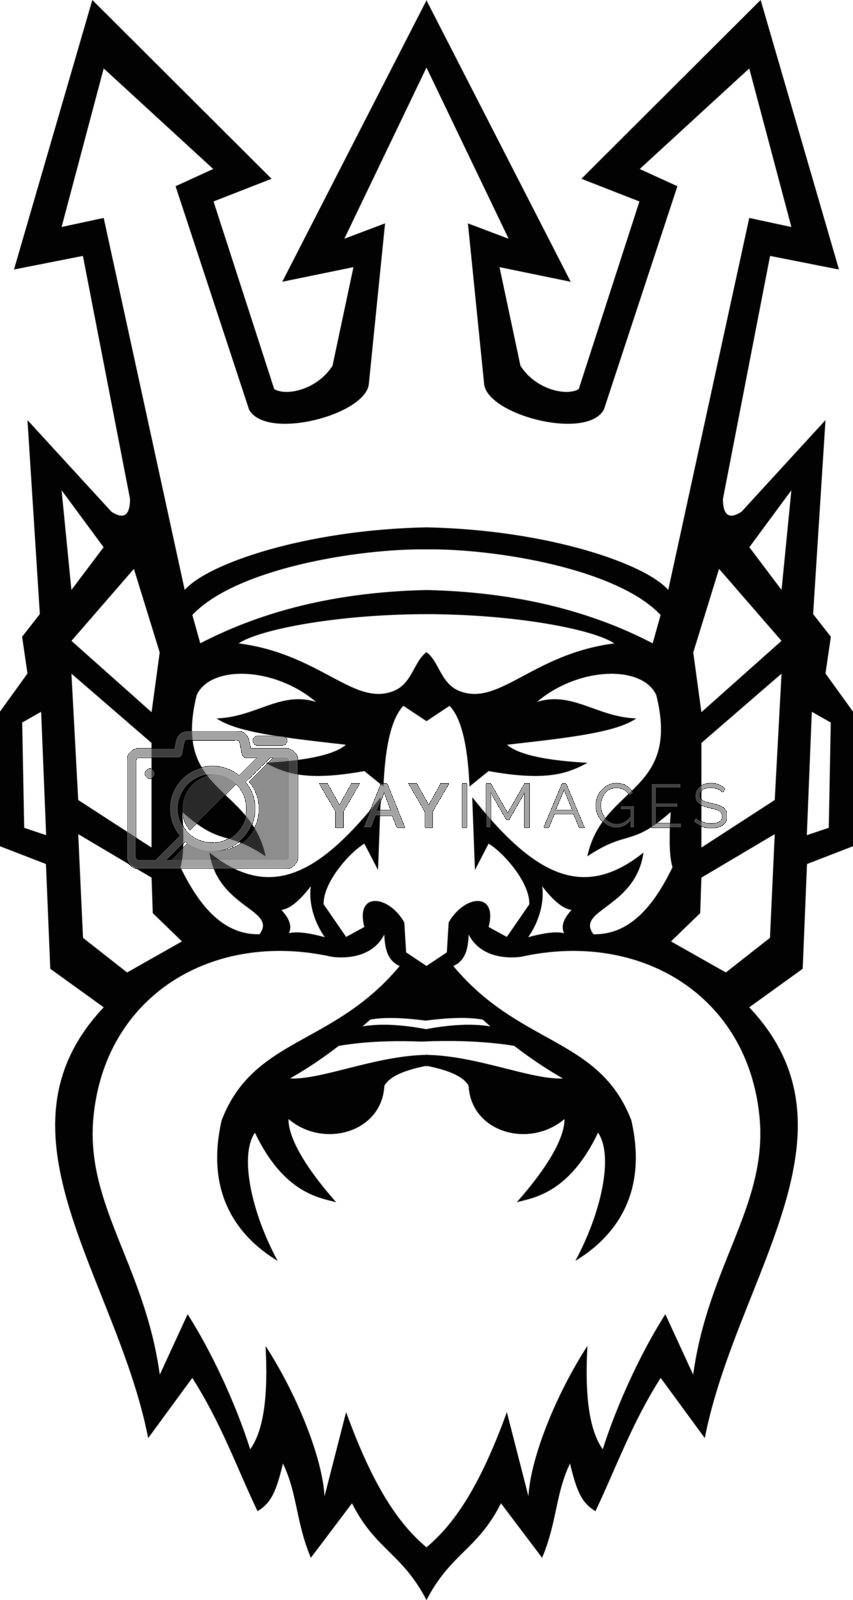 Mascot illustration of head of angry Poseidon or Neptune, god of the Sea in Greek religion and myth, wearing a trident crown viewed from front on isolated background in retro style.